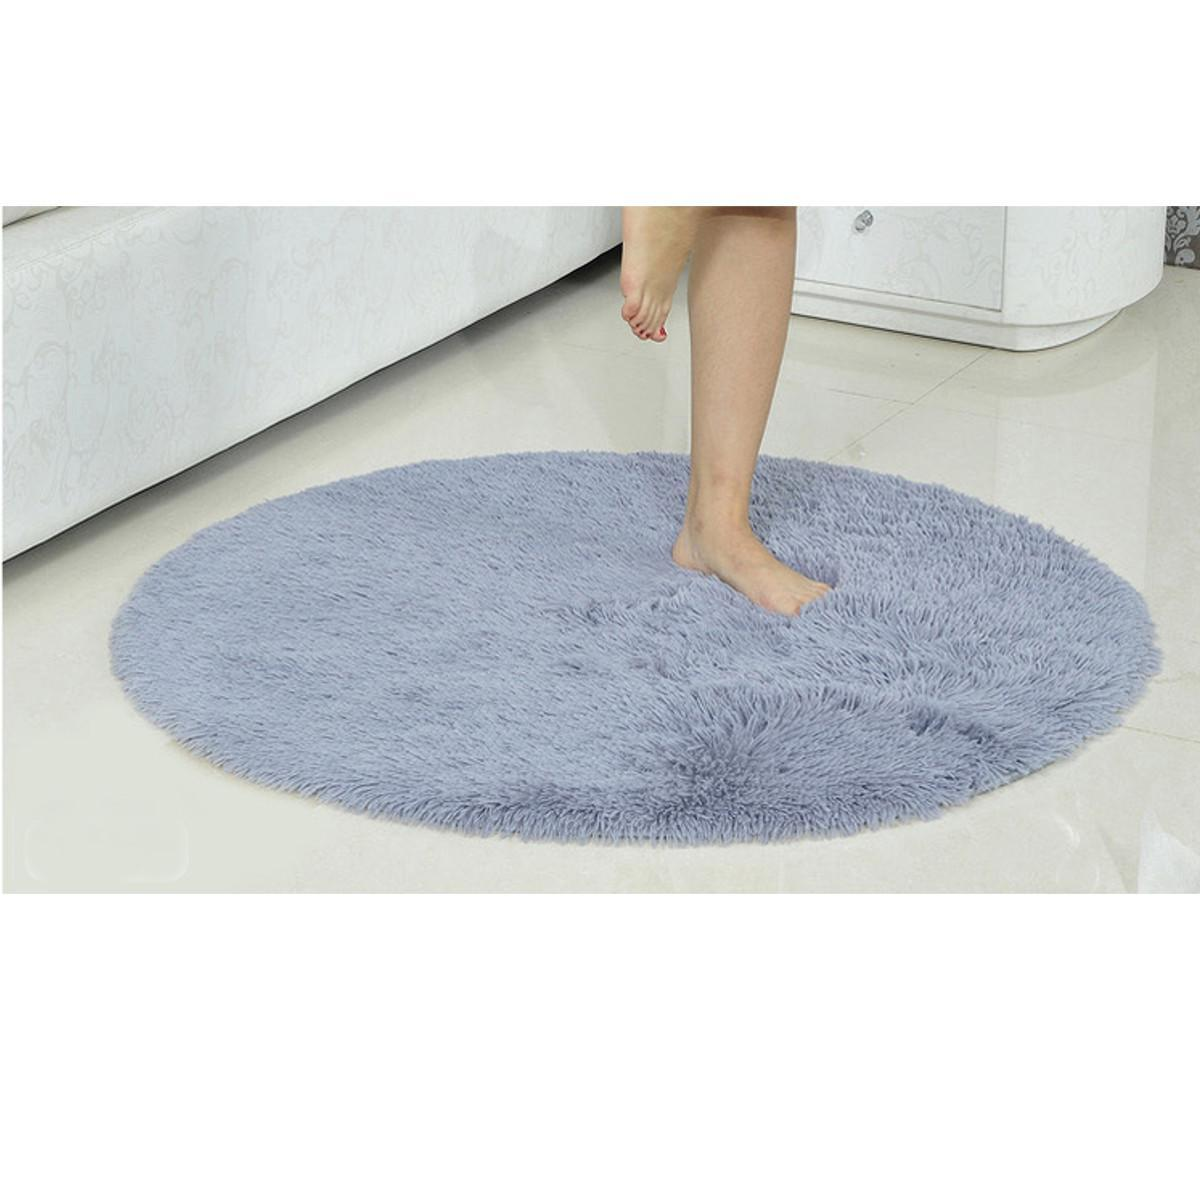 Fluffy Round Soft Rug Shaggy Area Kid Anti-Slip Carpet Room Office Floor Mat